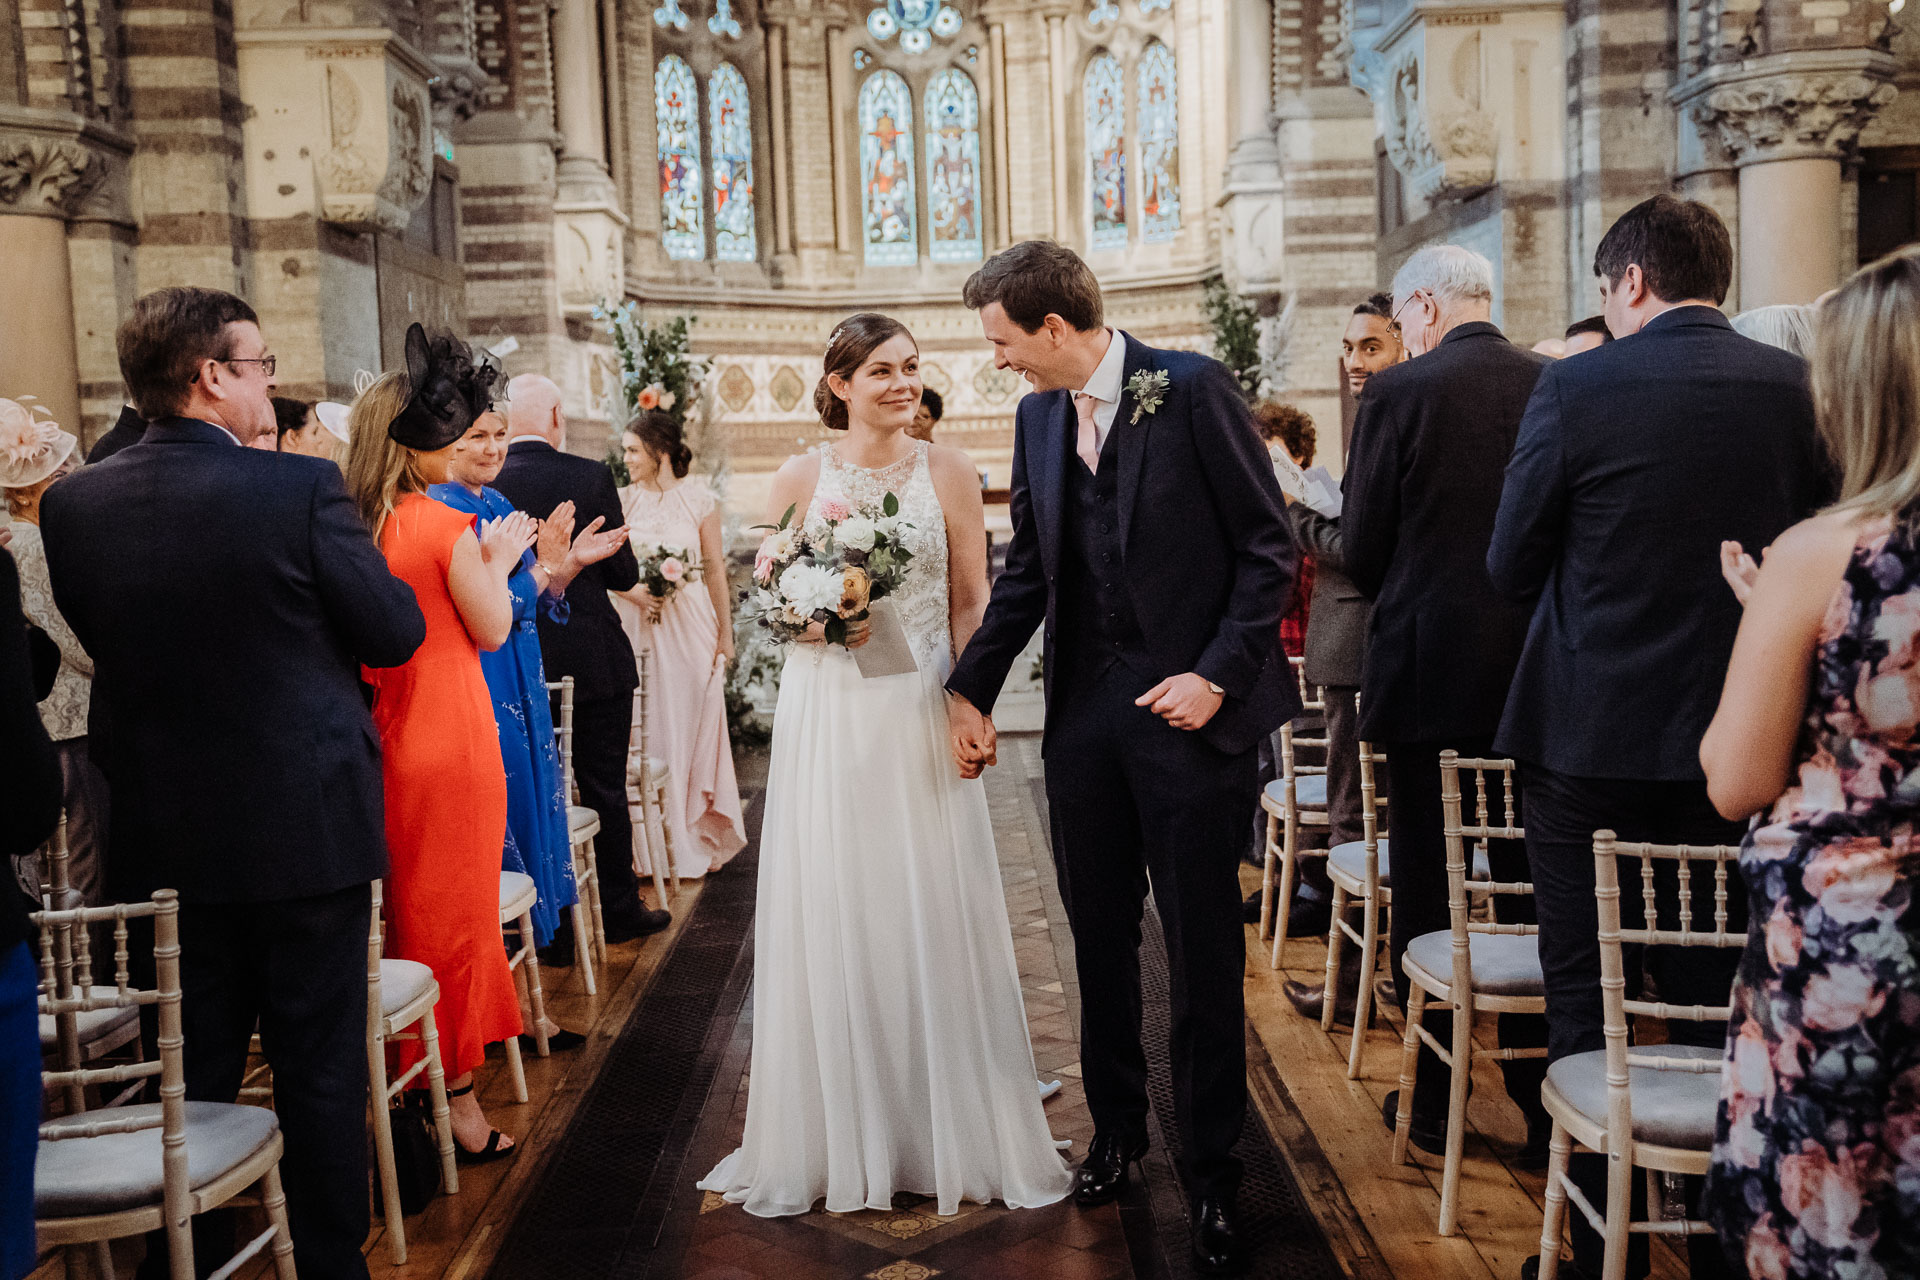 st-stephens-hampstead-wedding-photographer-023